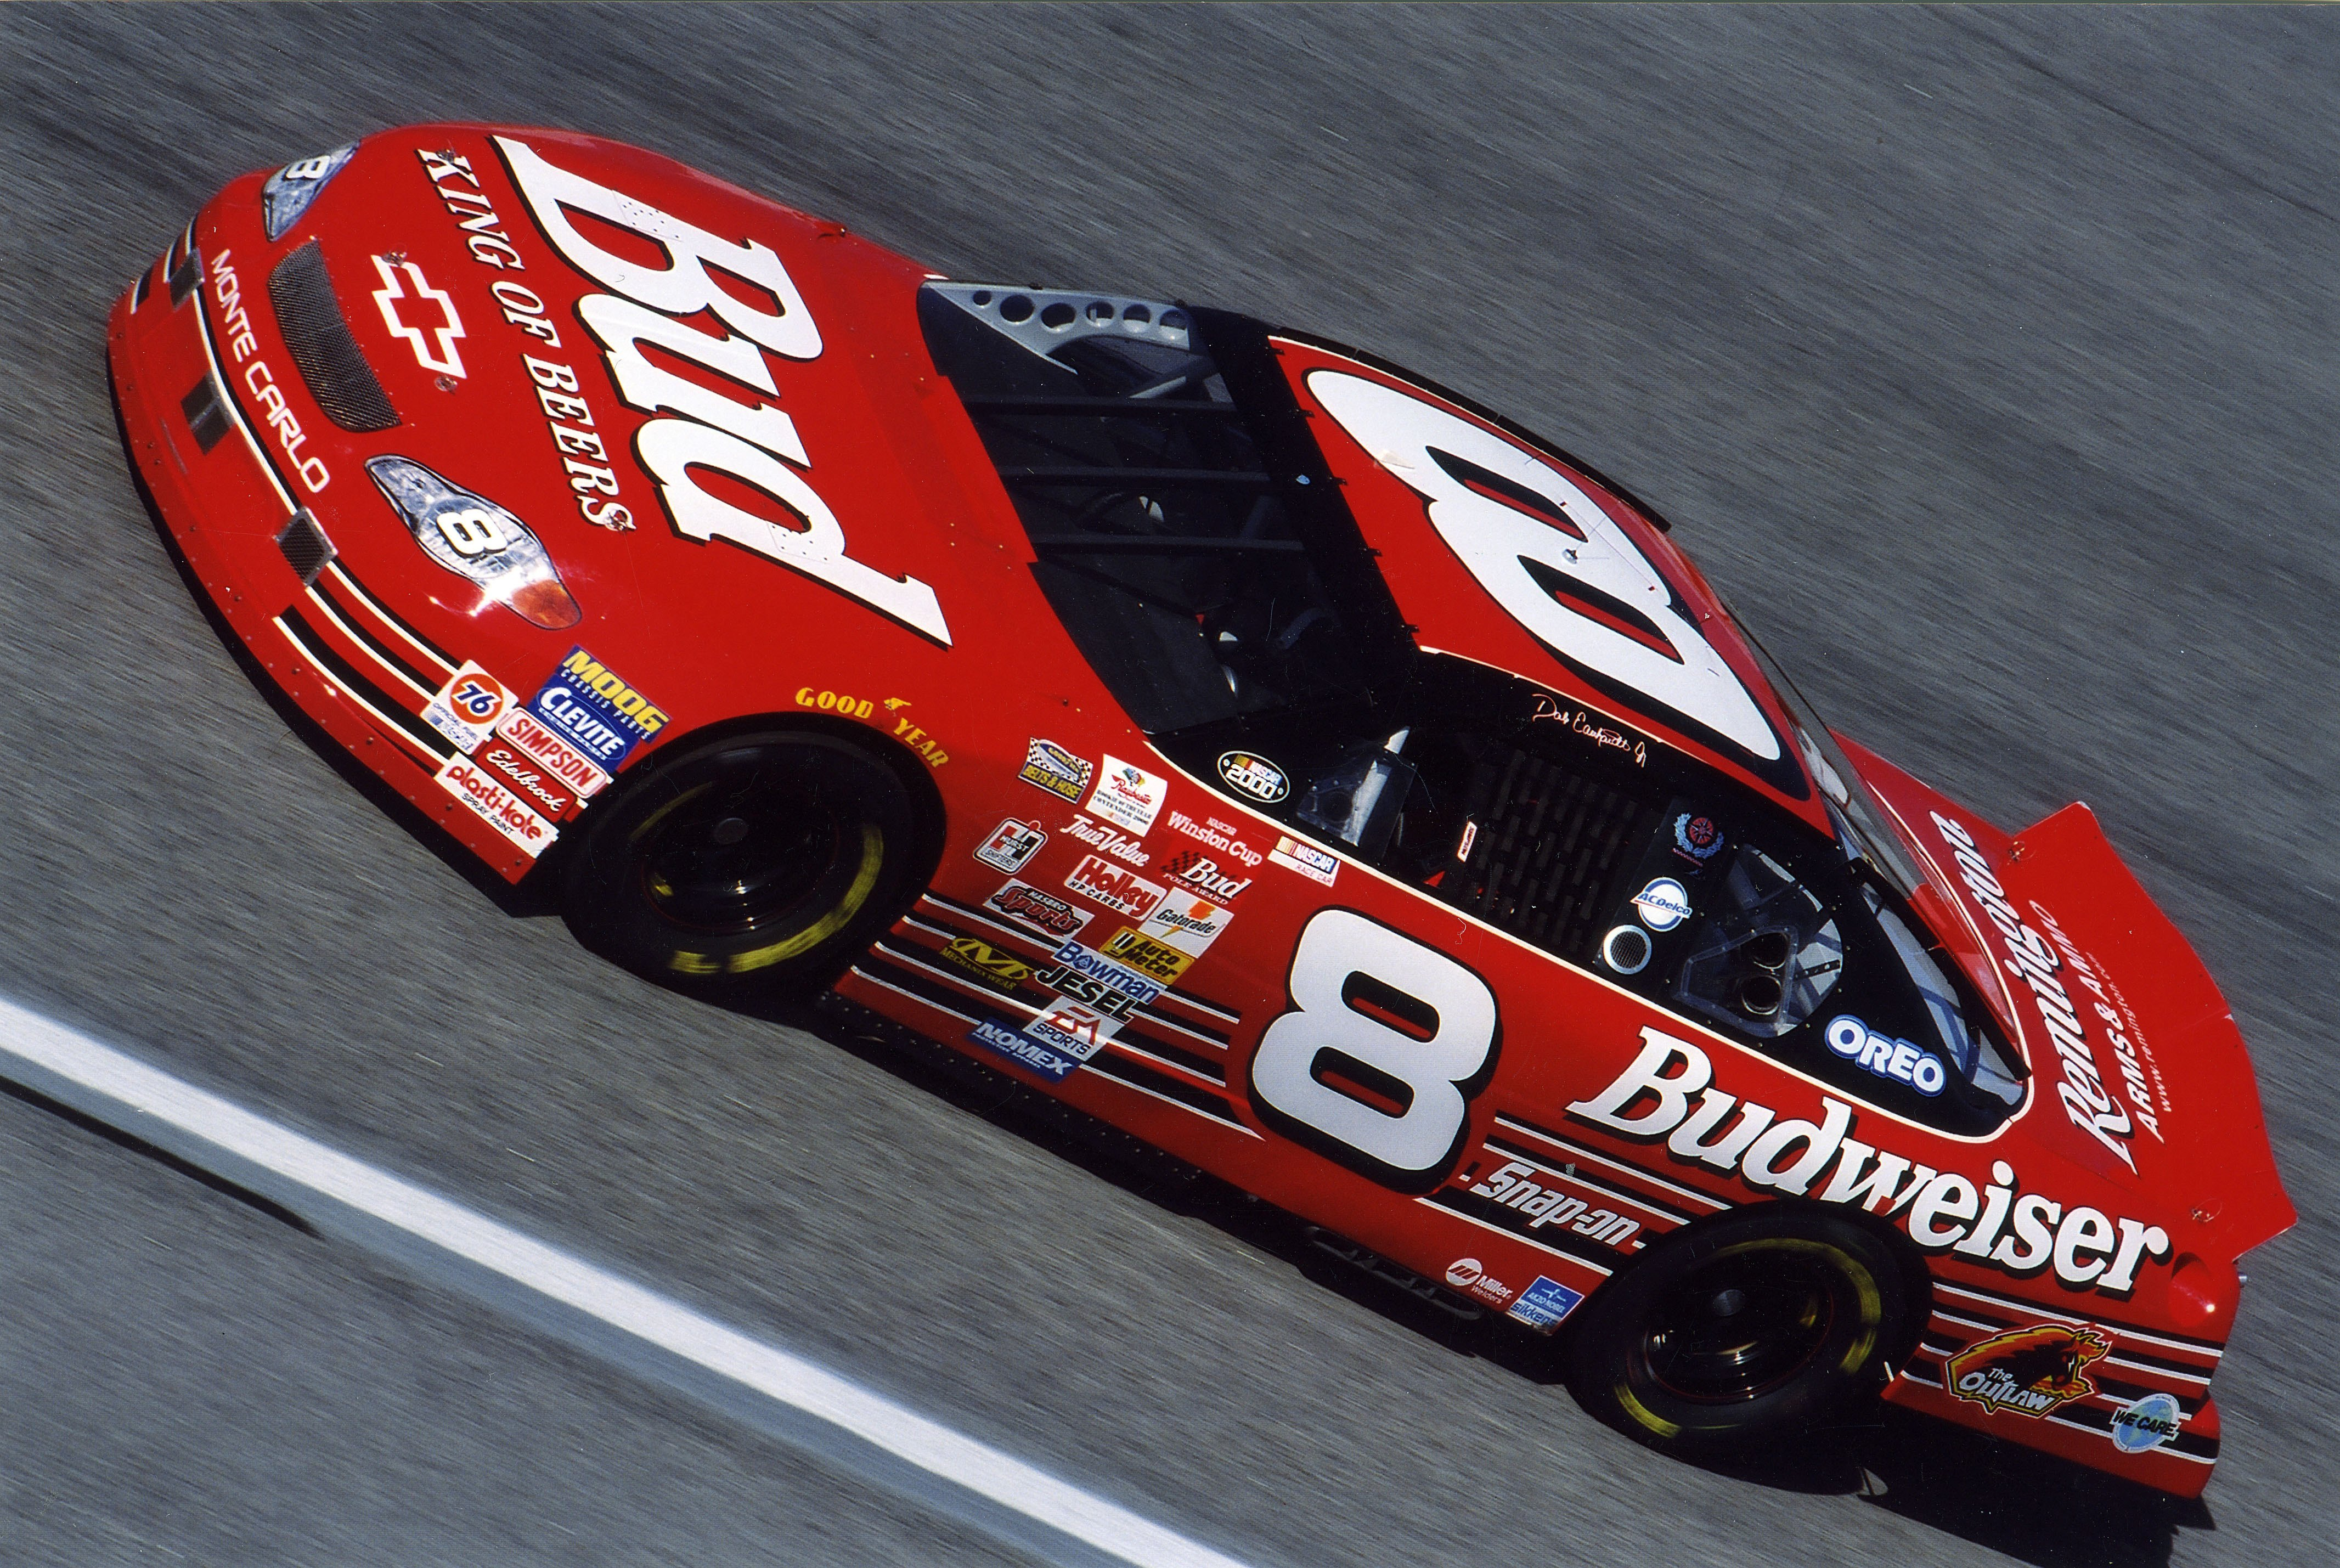 DAYTONA BEACH, FL - FEBRUARY 20: Dale Earnhardt Jr. competed in his first ever Daytona 500 finishing 13th on February 20, 2000 in Daytona Beach, Florida. (Photo by ISC Archives via Getty Images)